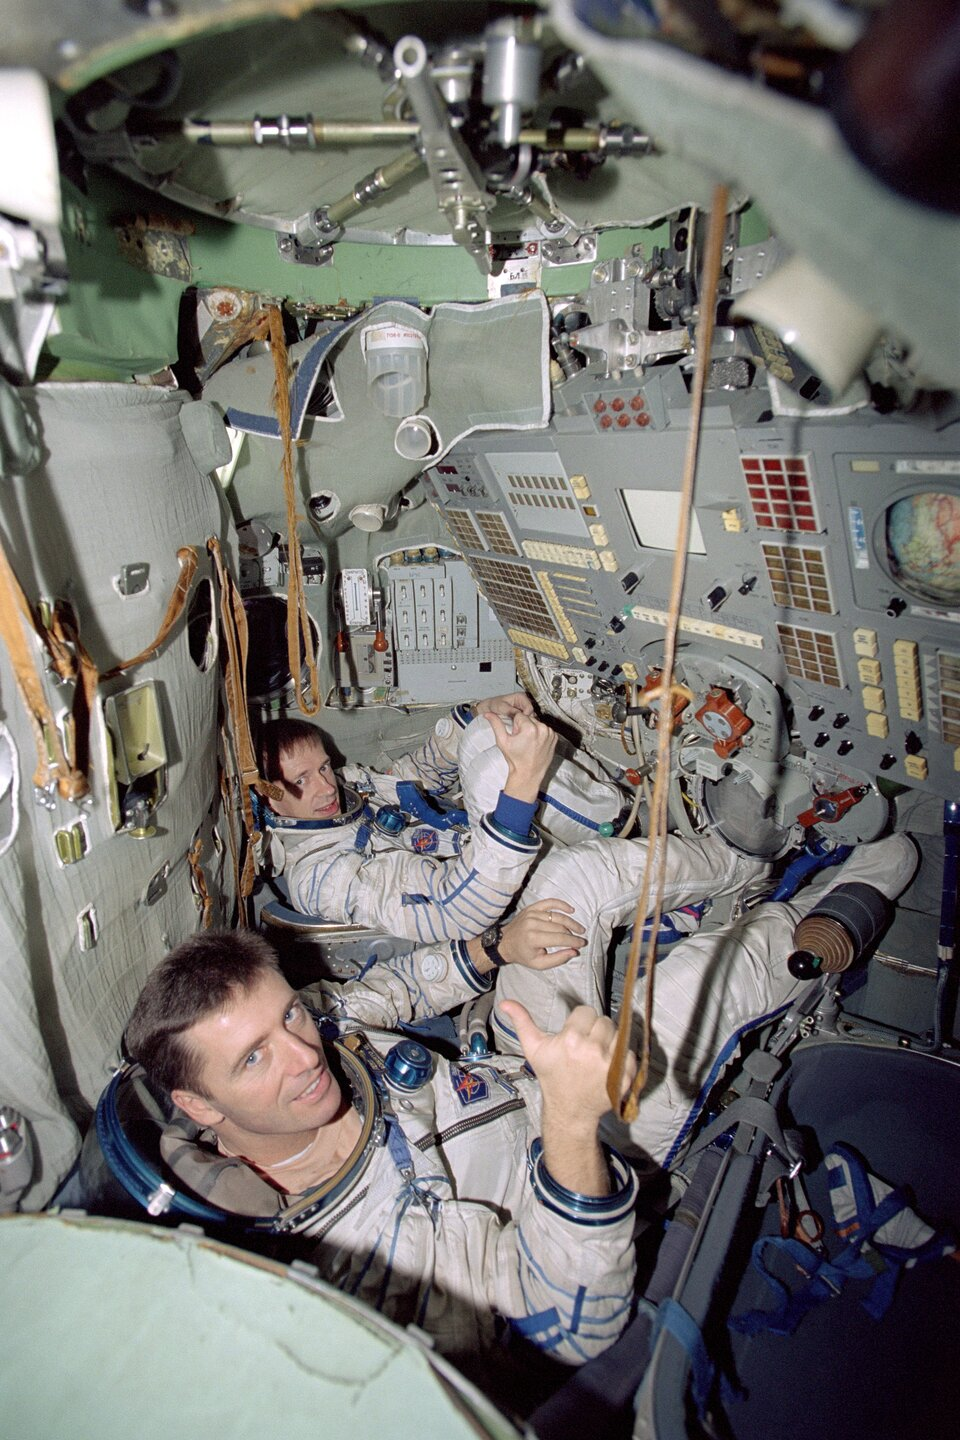 Vittori and De Winne in the Soyuz simulator at Star City, Moscow